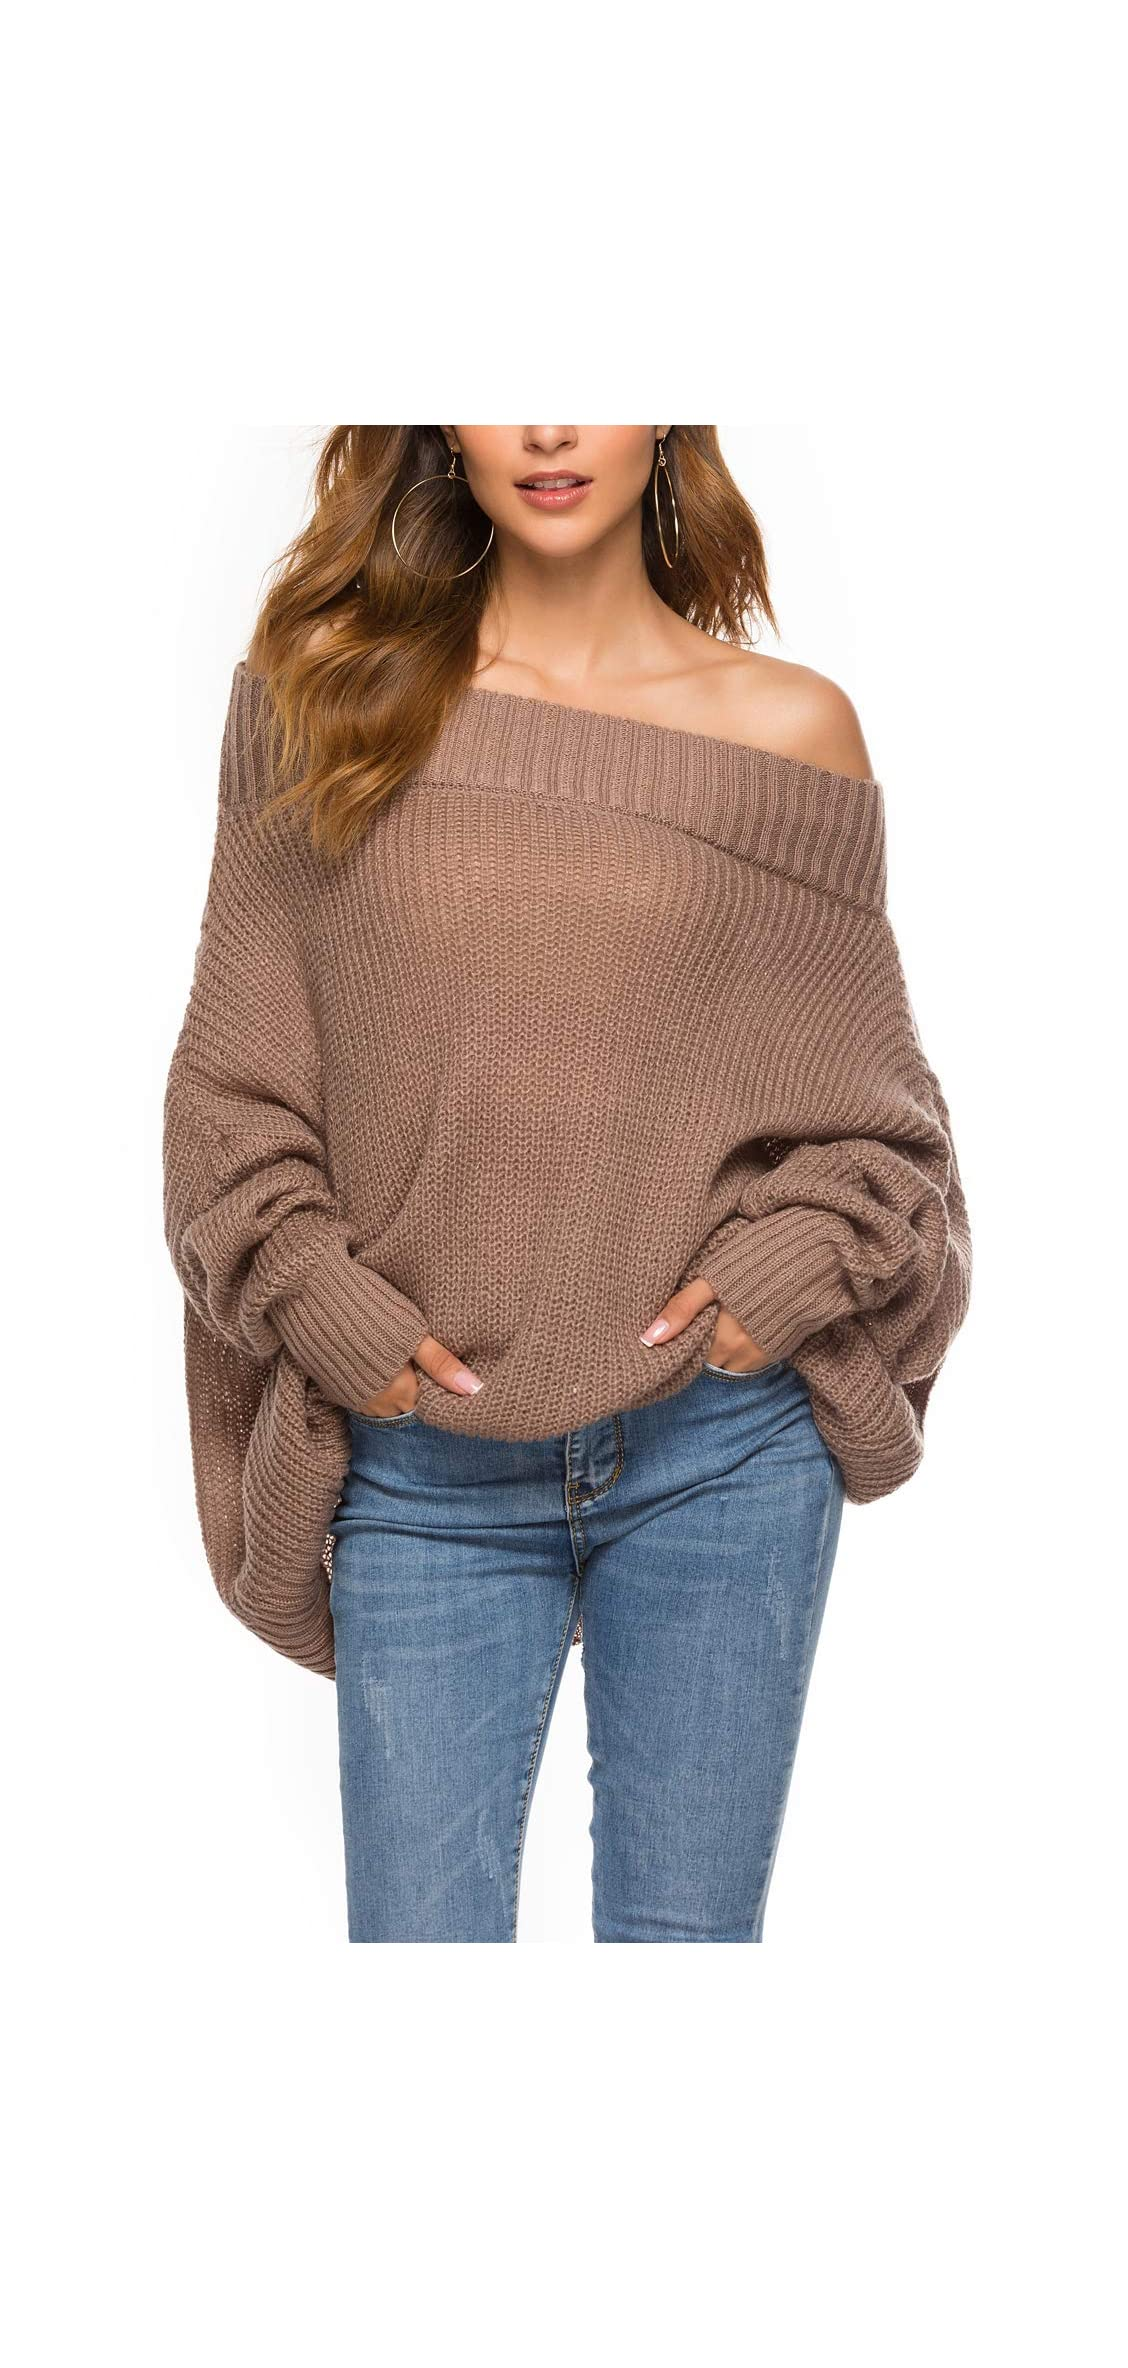 Women Off Shoulder Sweater Loose Pullover Batwing Sleeve